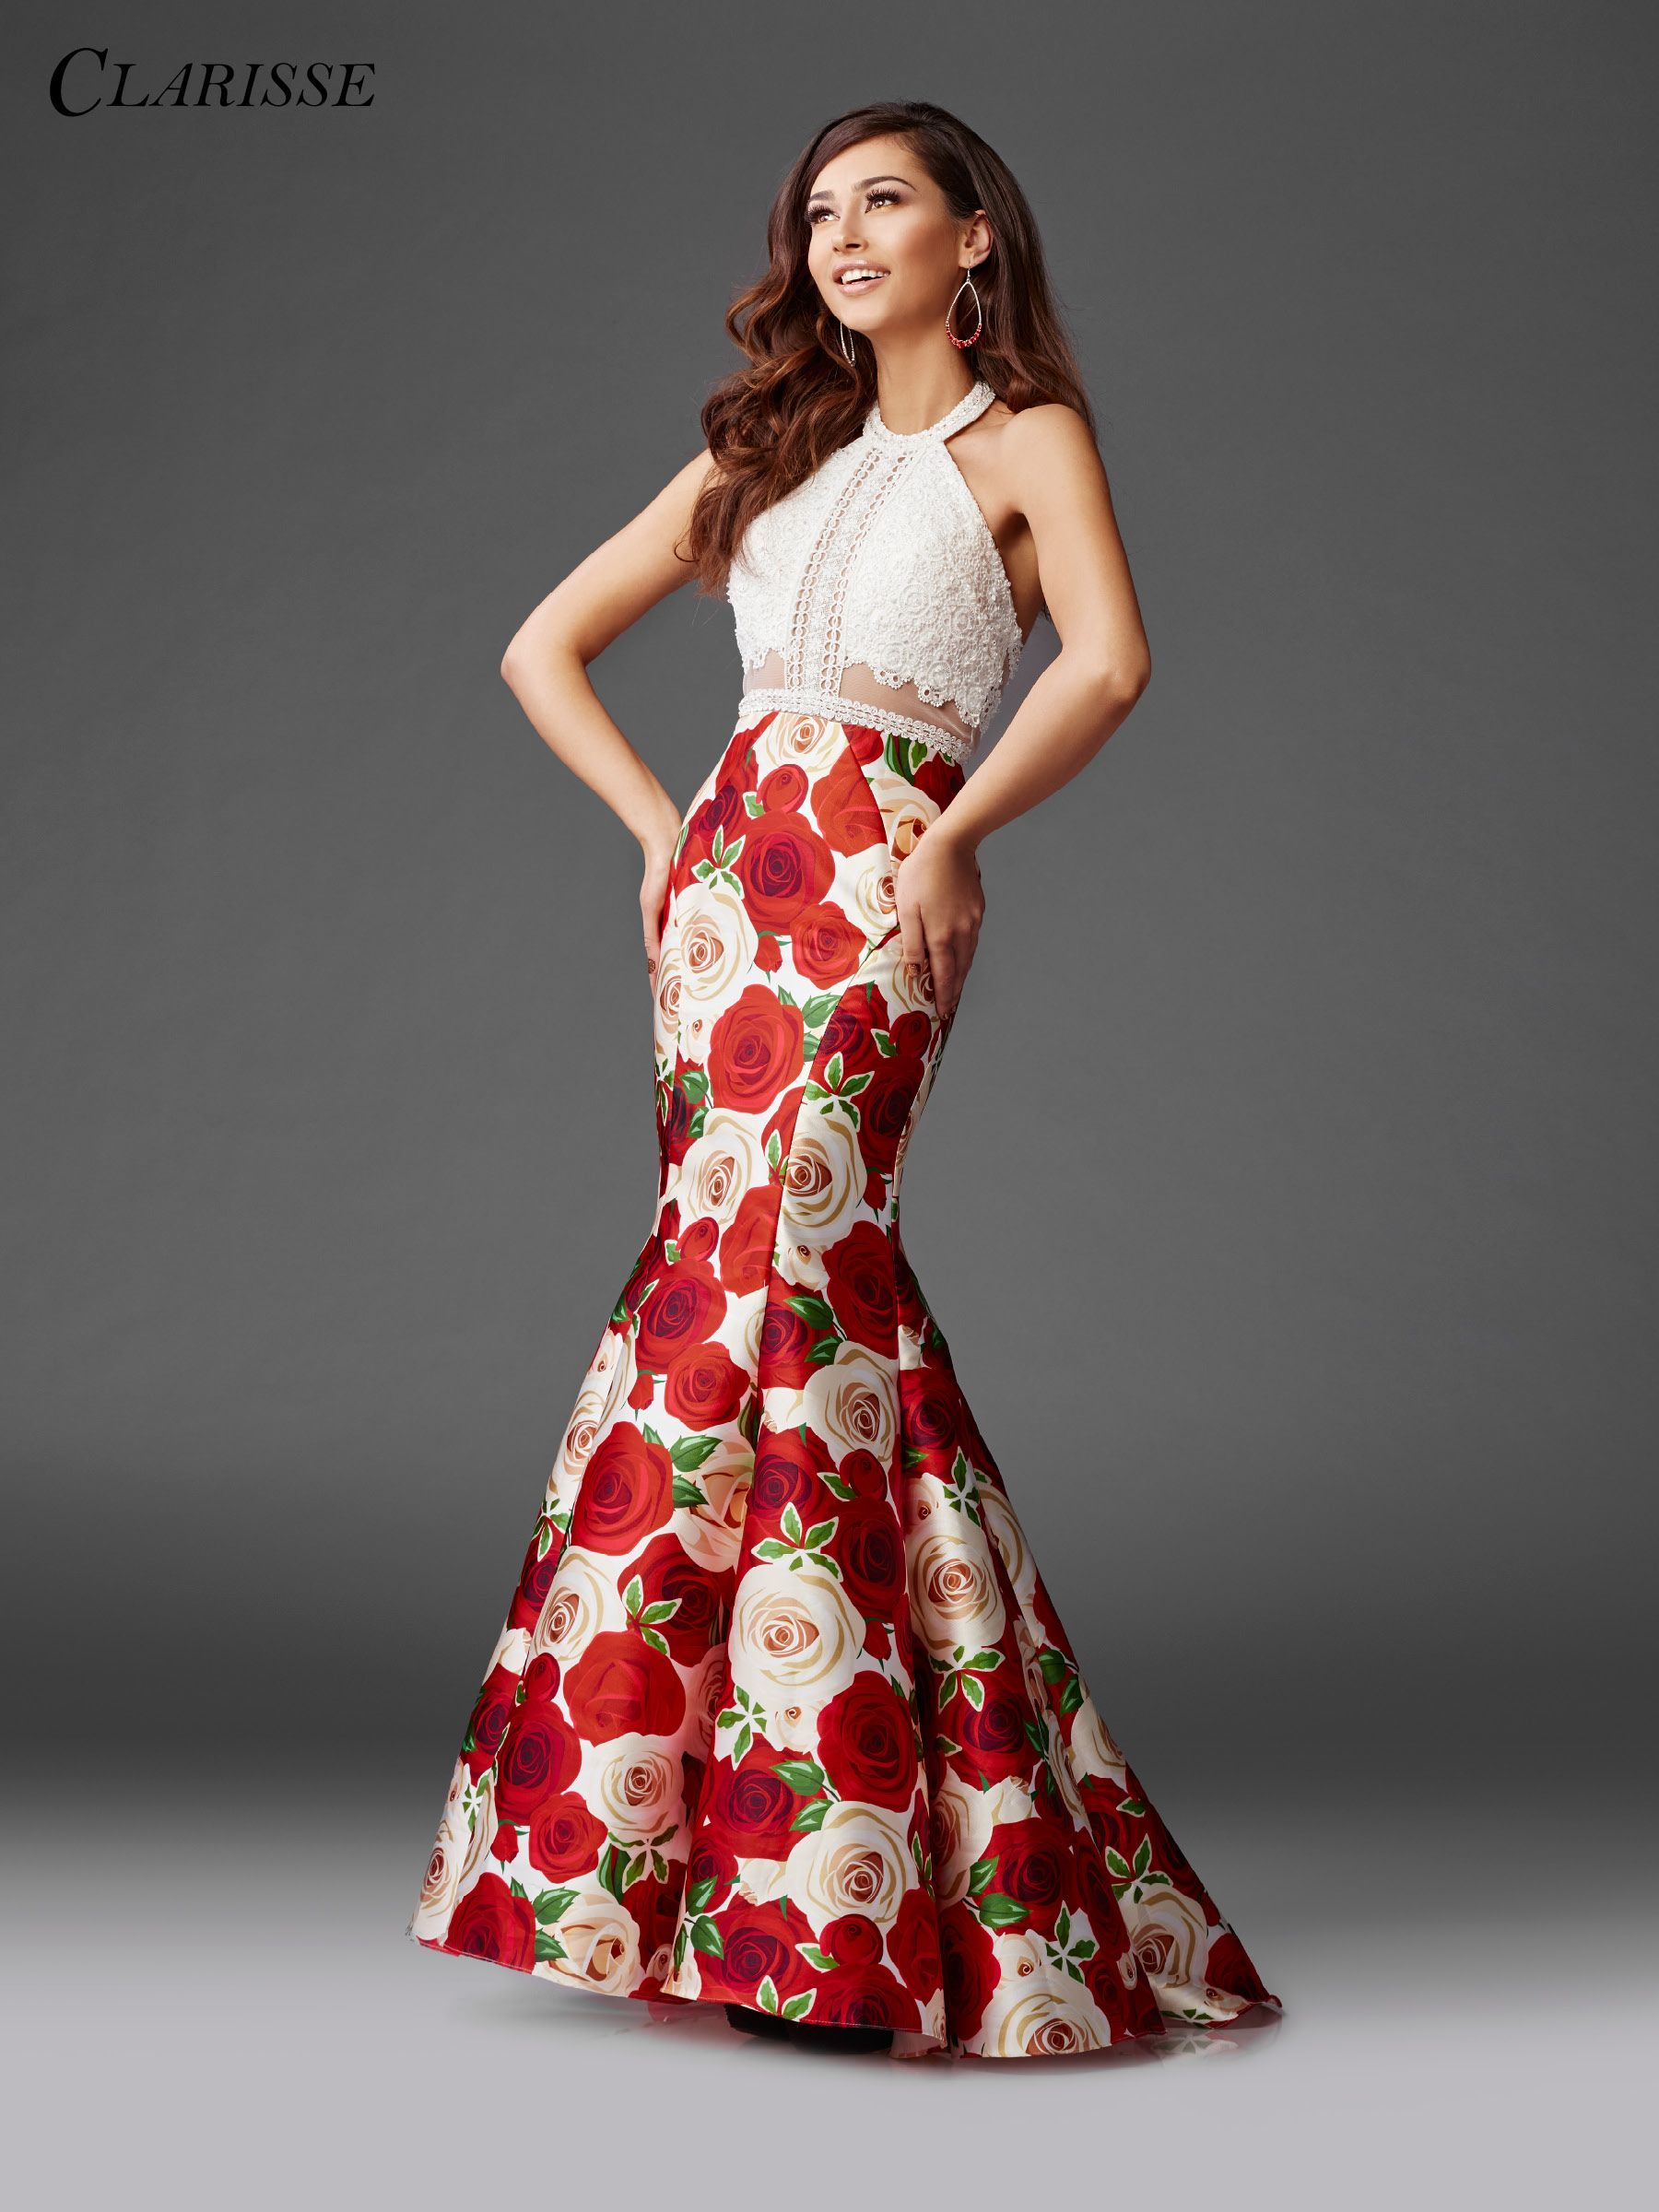 Clarisse prom dress make a statement with this crochet